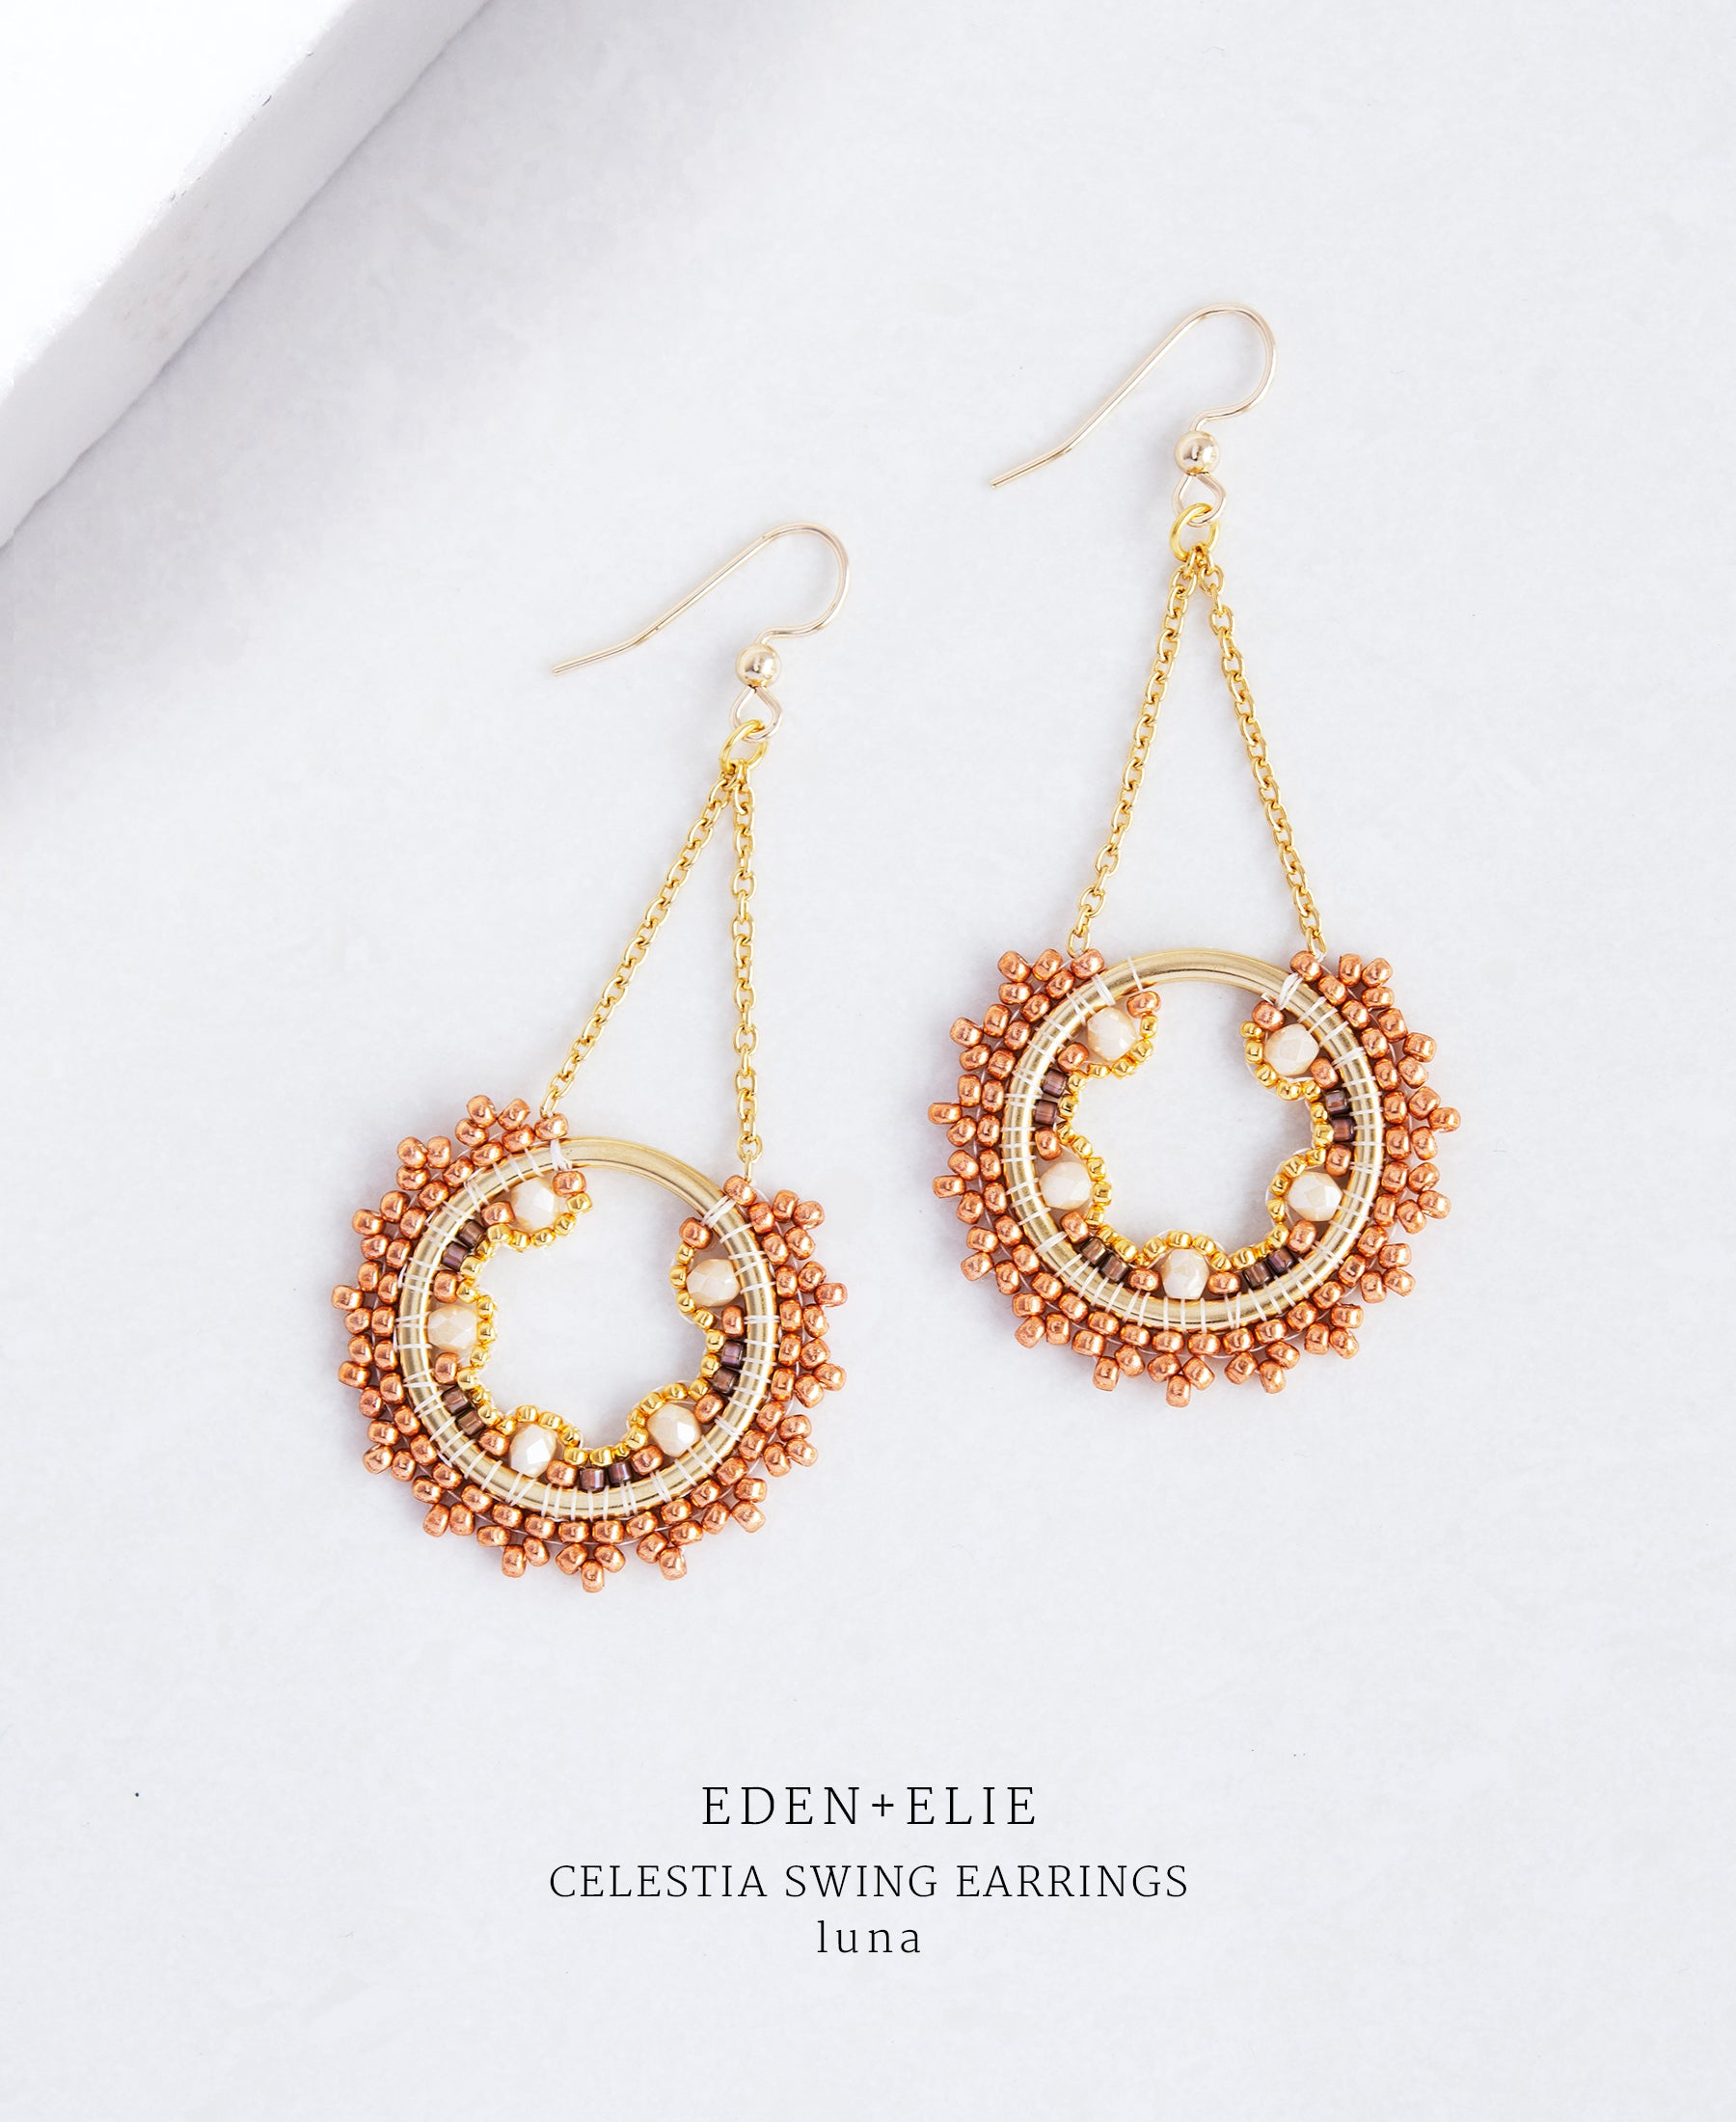 EDEN + ELIE Celestia swing earrings - luna ivory